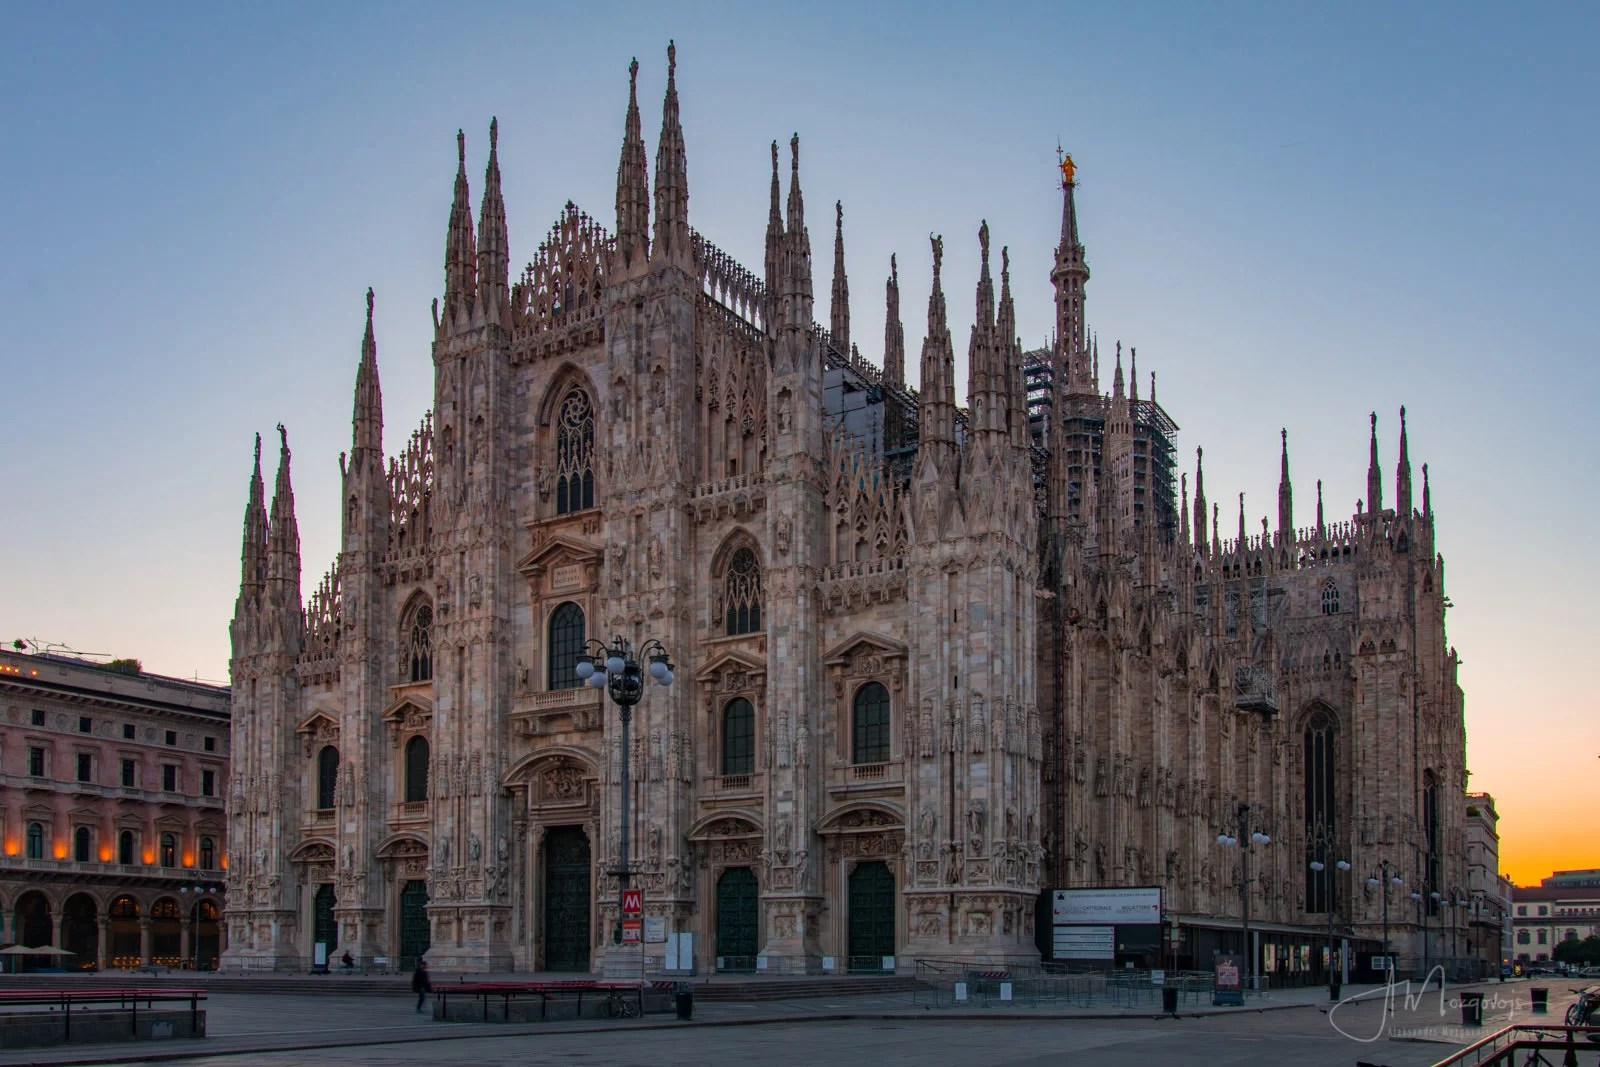 Duomo at sunrise is a much more relaxed and laid-back place